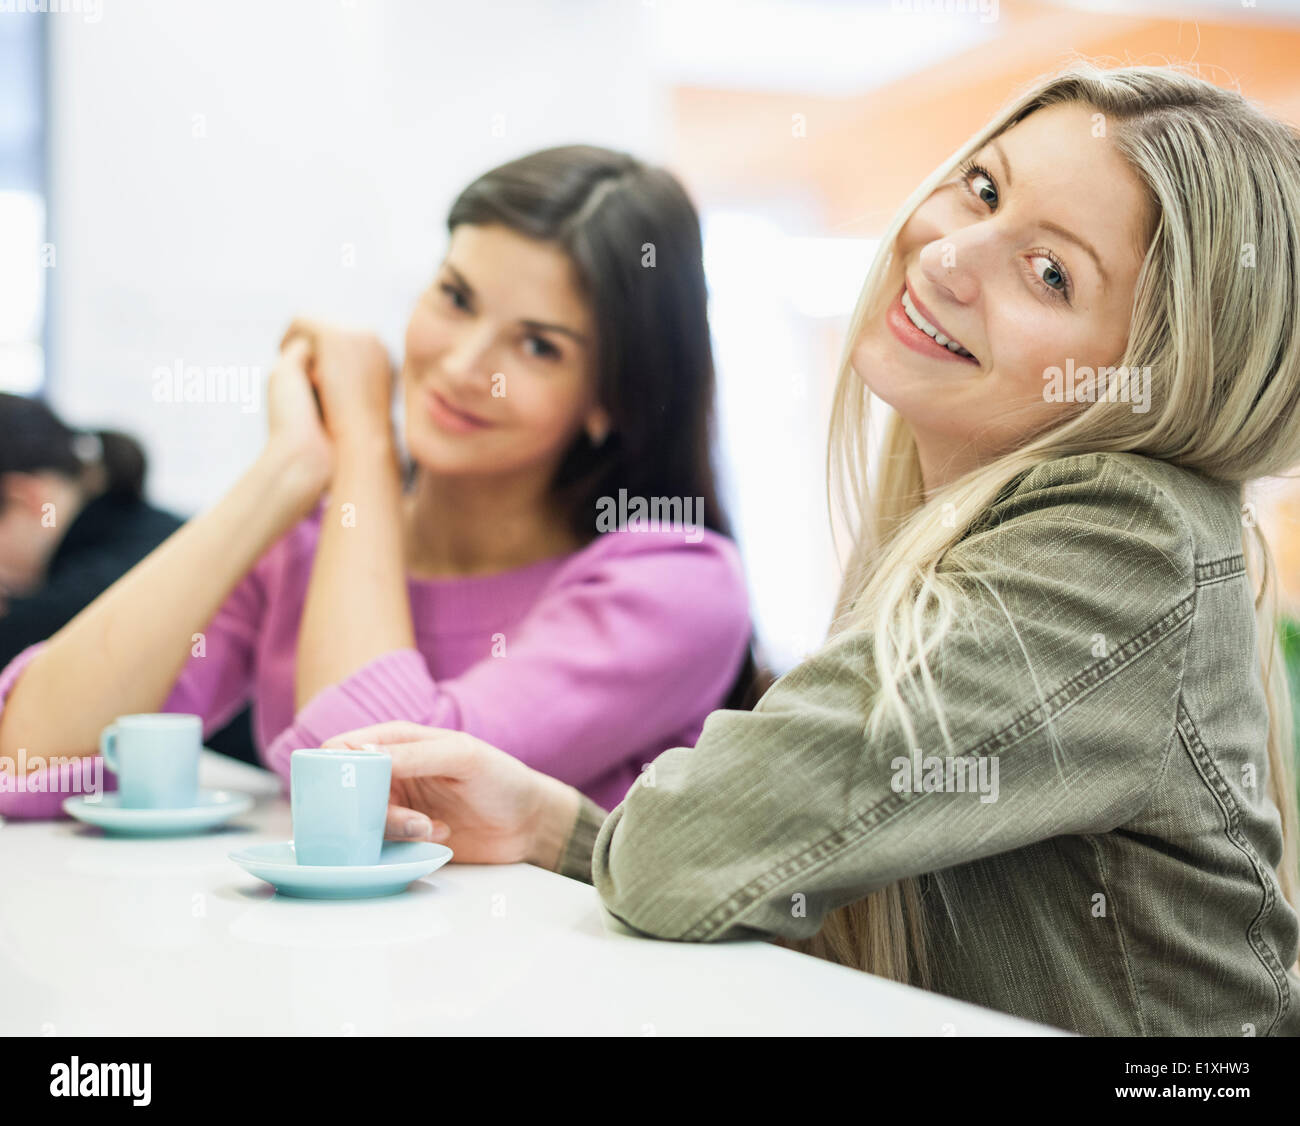 Portrait of young businesswomen smiling at cafeteria table - Stock Image